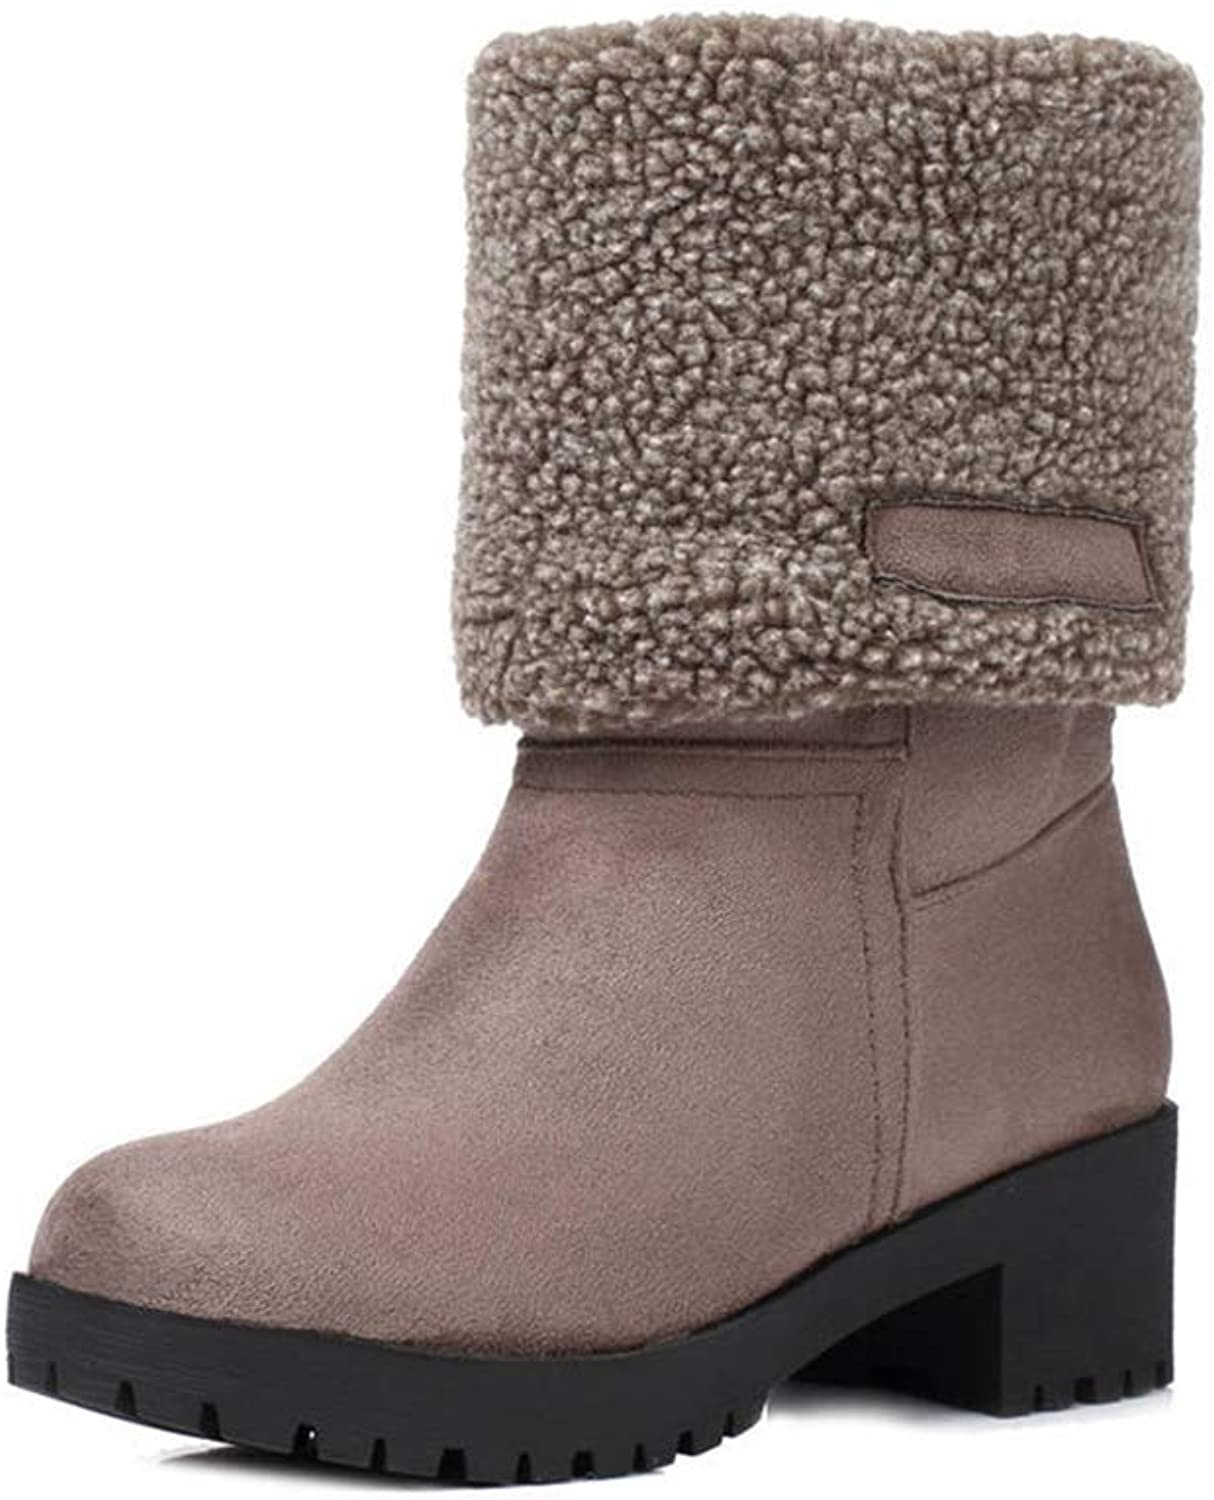 NOMIMAS Women's Mid Calf Boots Simple Square Heel shoes Fashion Style Winter Slip On Footwear